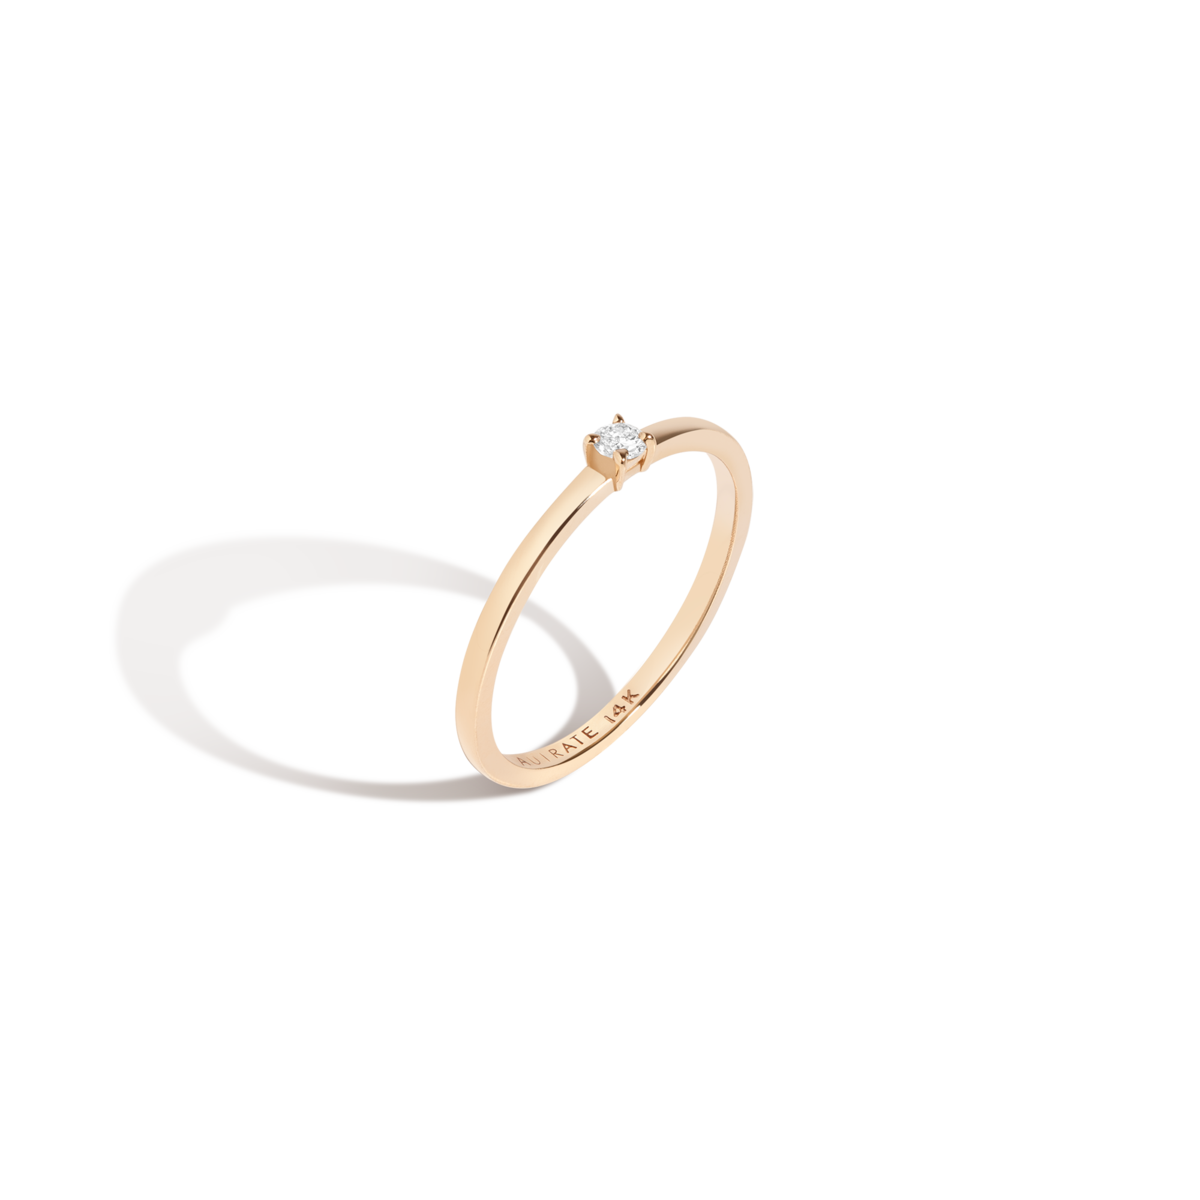 Medium Diamond Solitaire Ring 14K gold